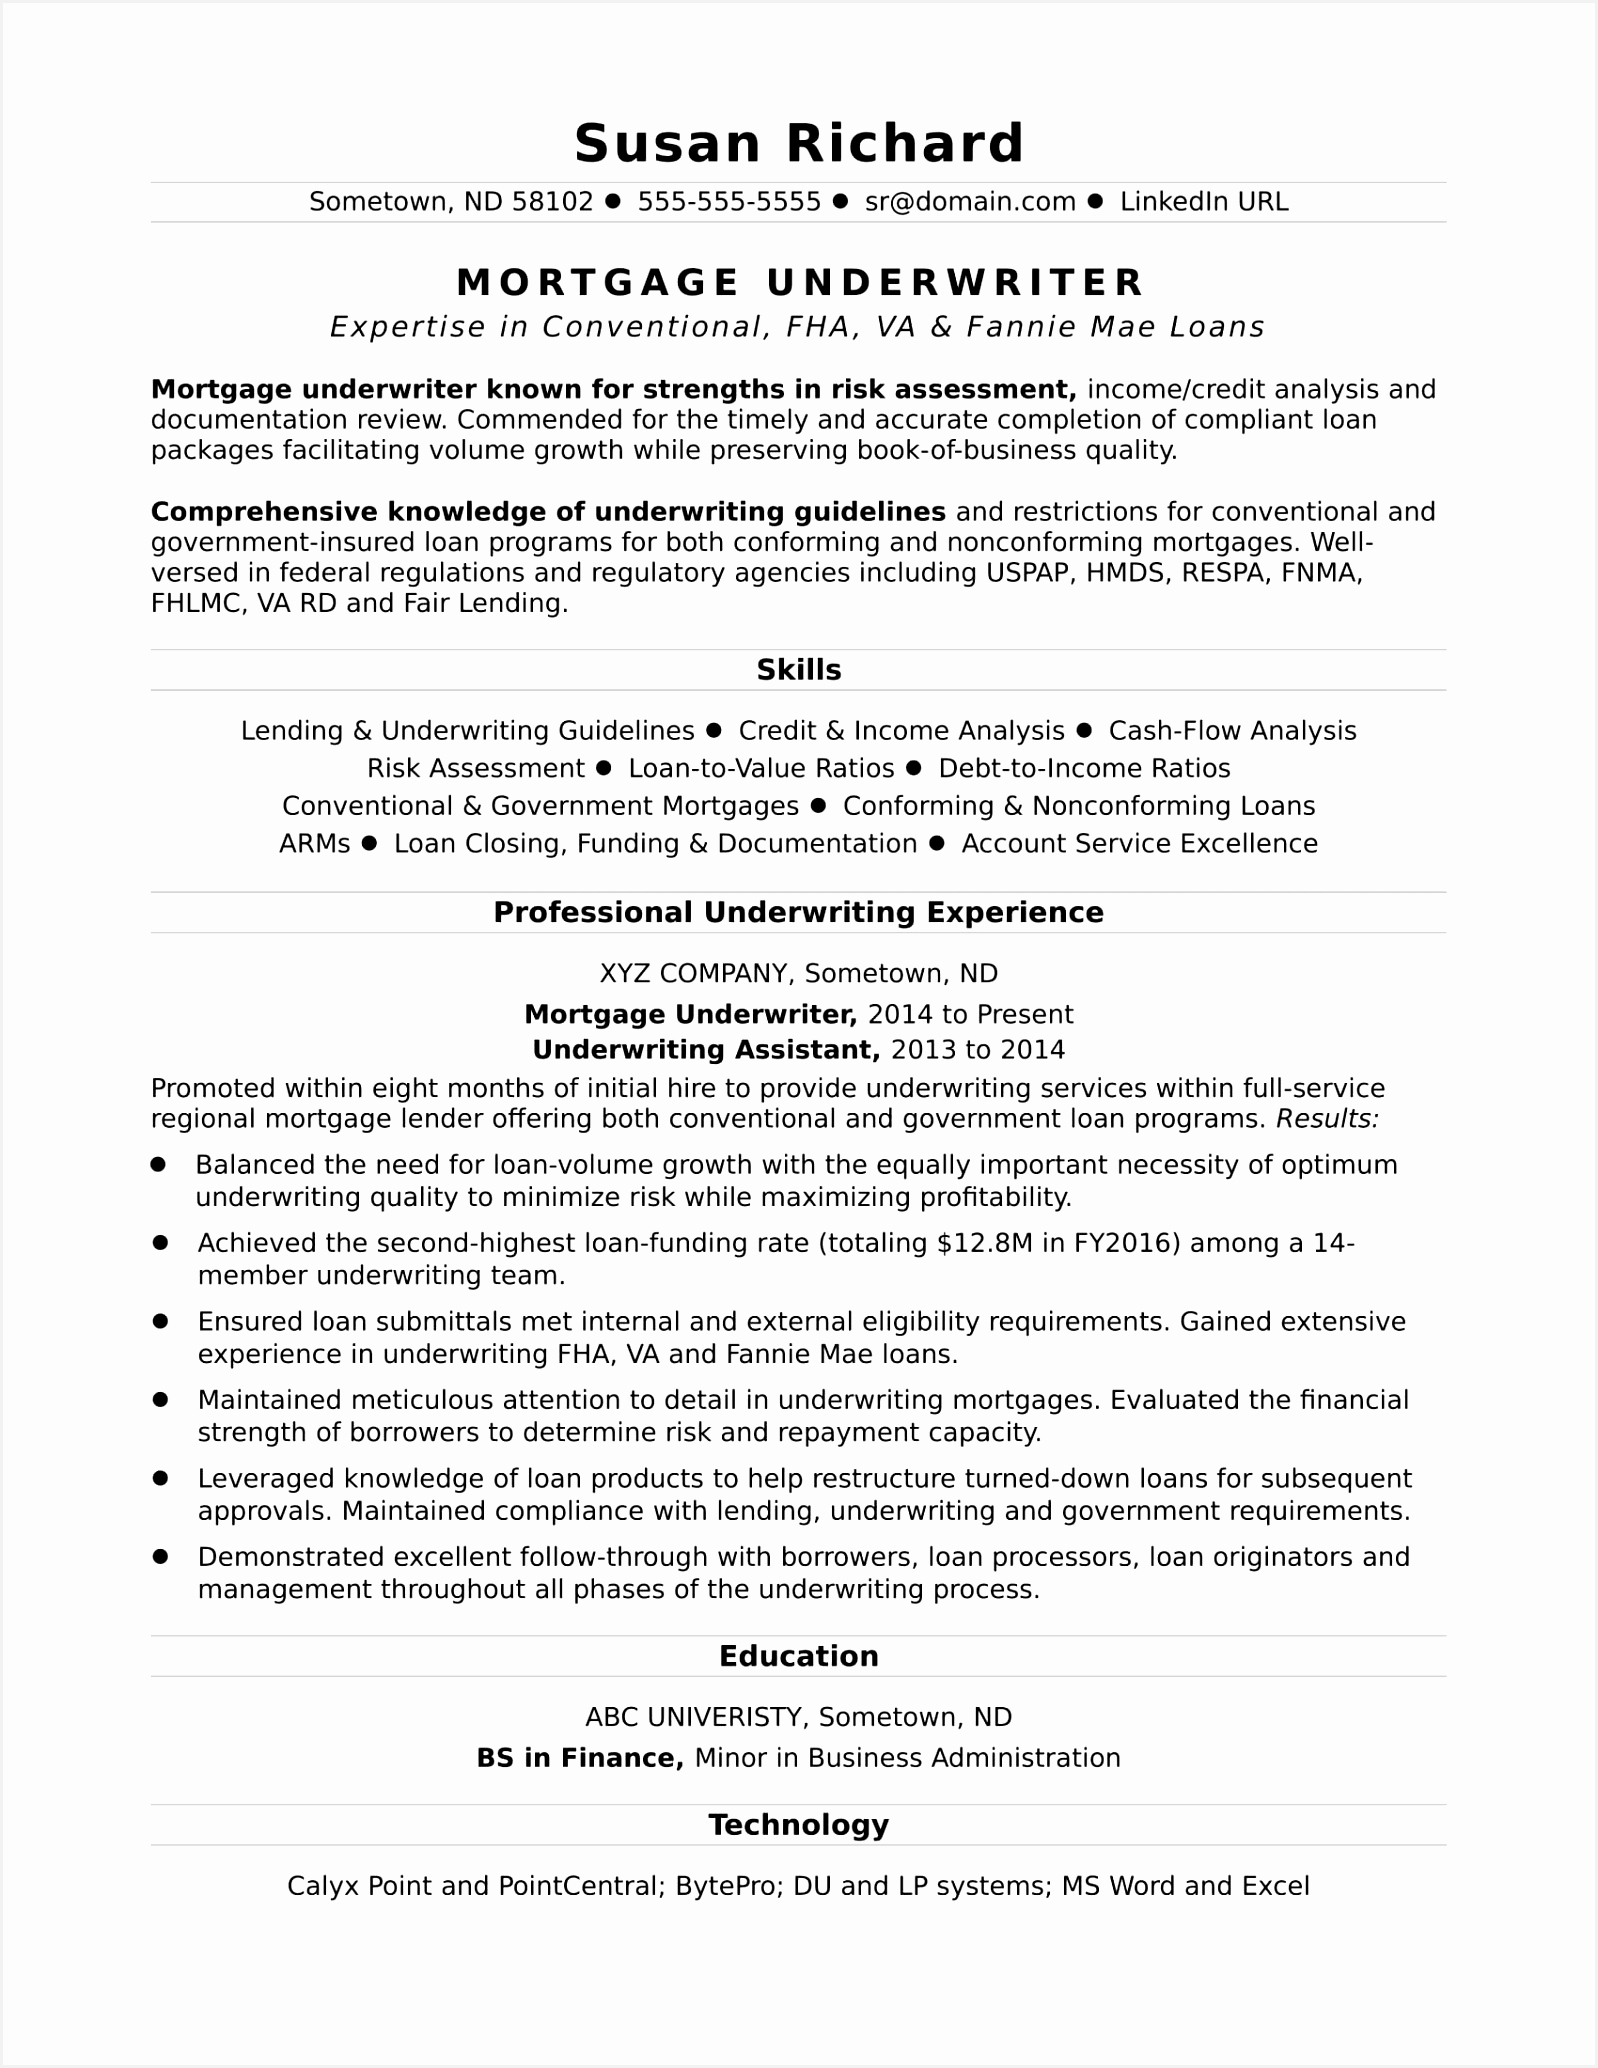 Free Sample Resume Template Lgidn Fresh Luxury Microsoft Word Resume Template Of Free Sample Resume Template Bvepn Inspirational Free Executive Resume Template – Executive Resume Examples Good